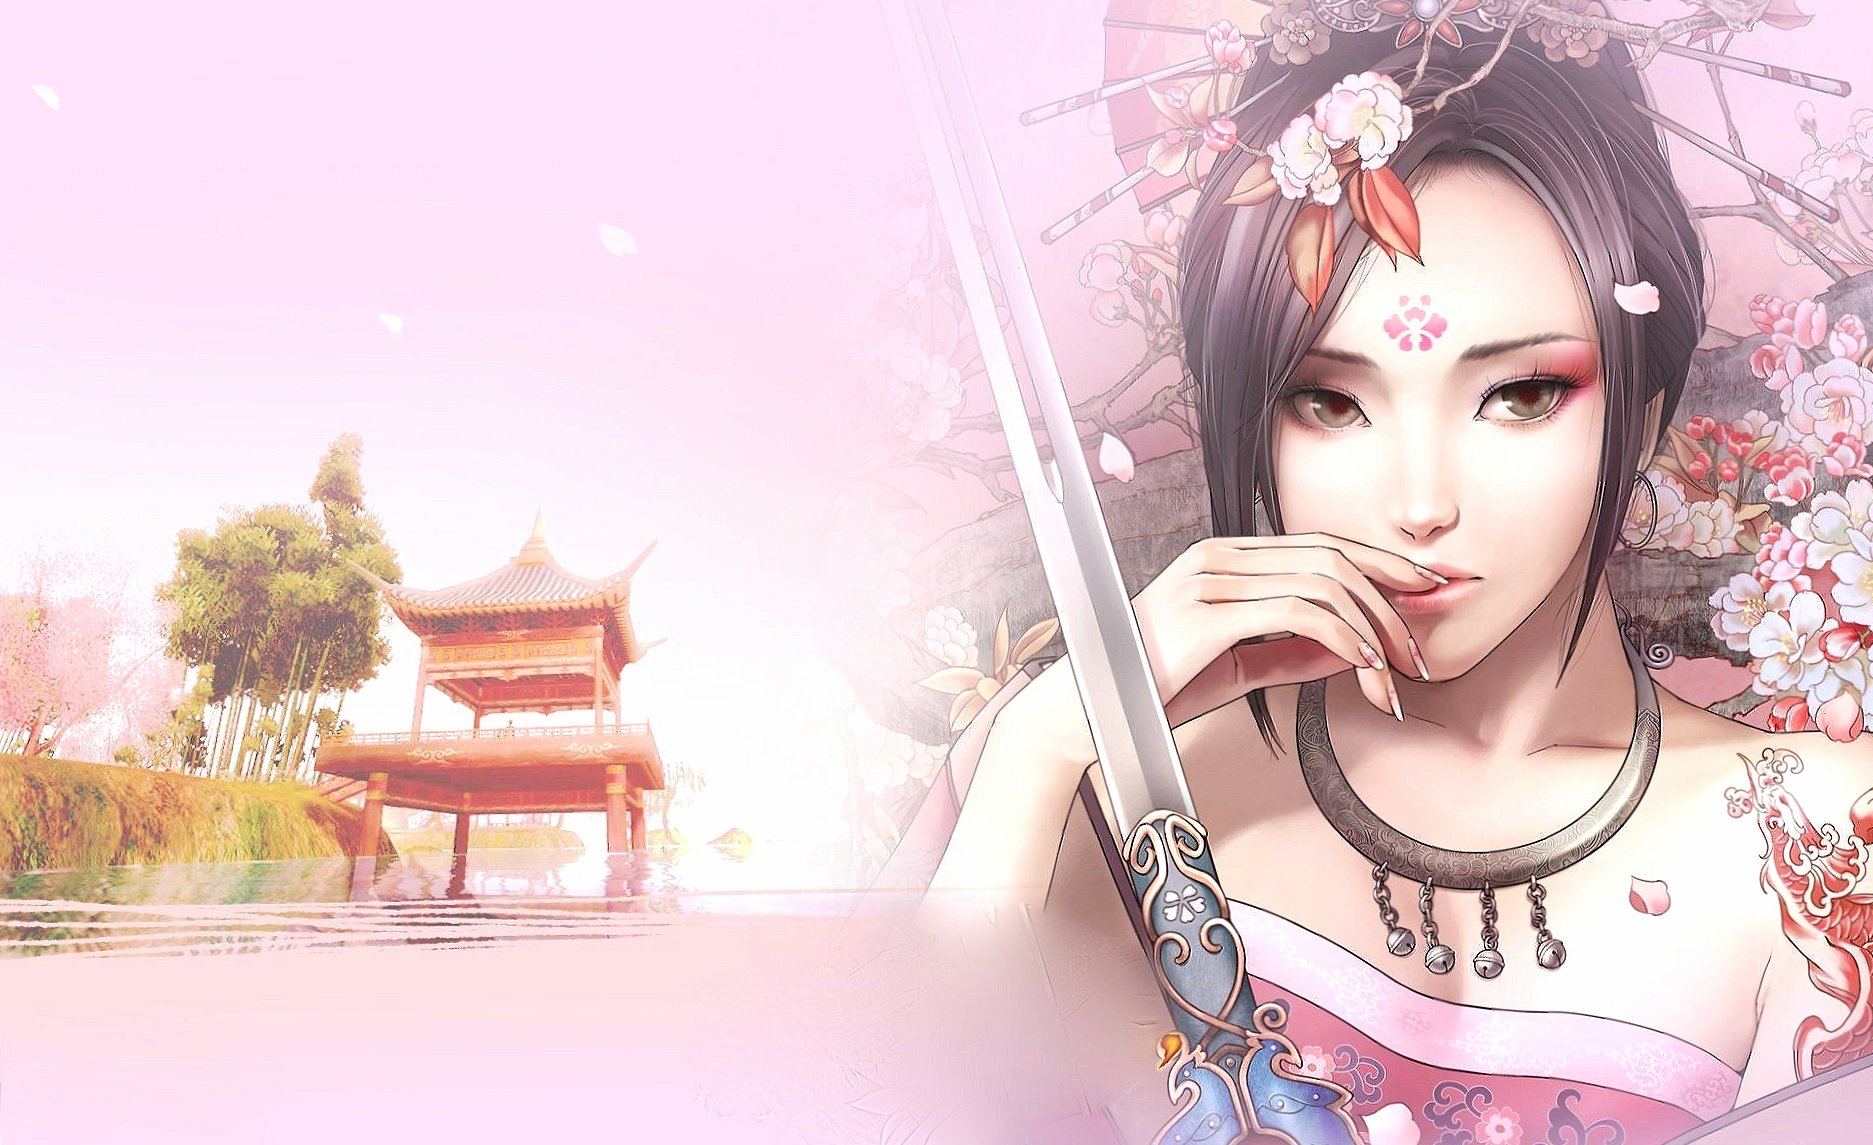 Amazing oriental girl fantasy wallpapers HD quality